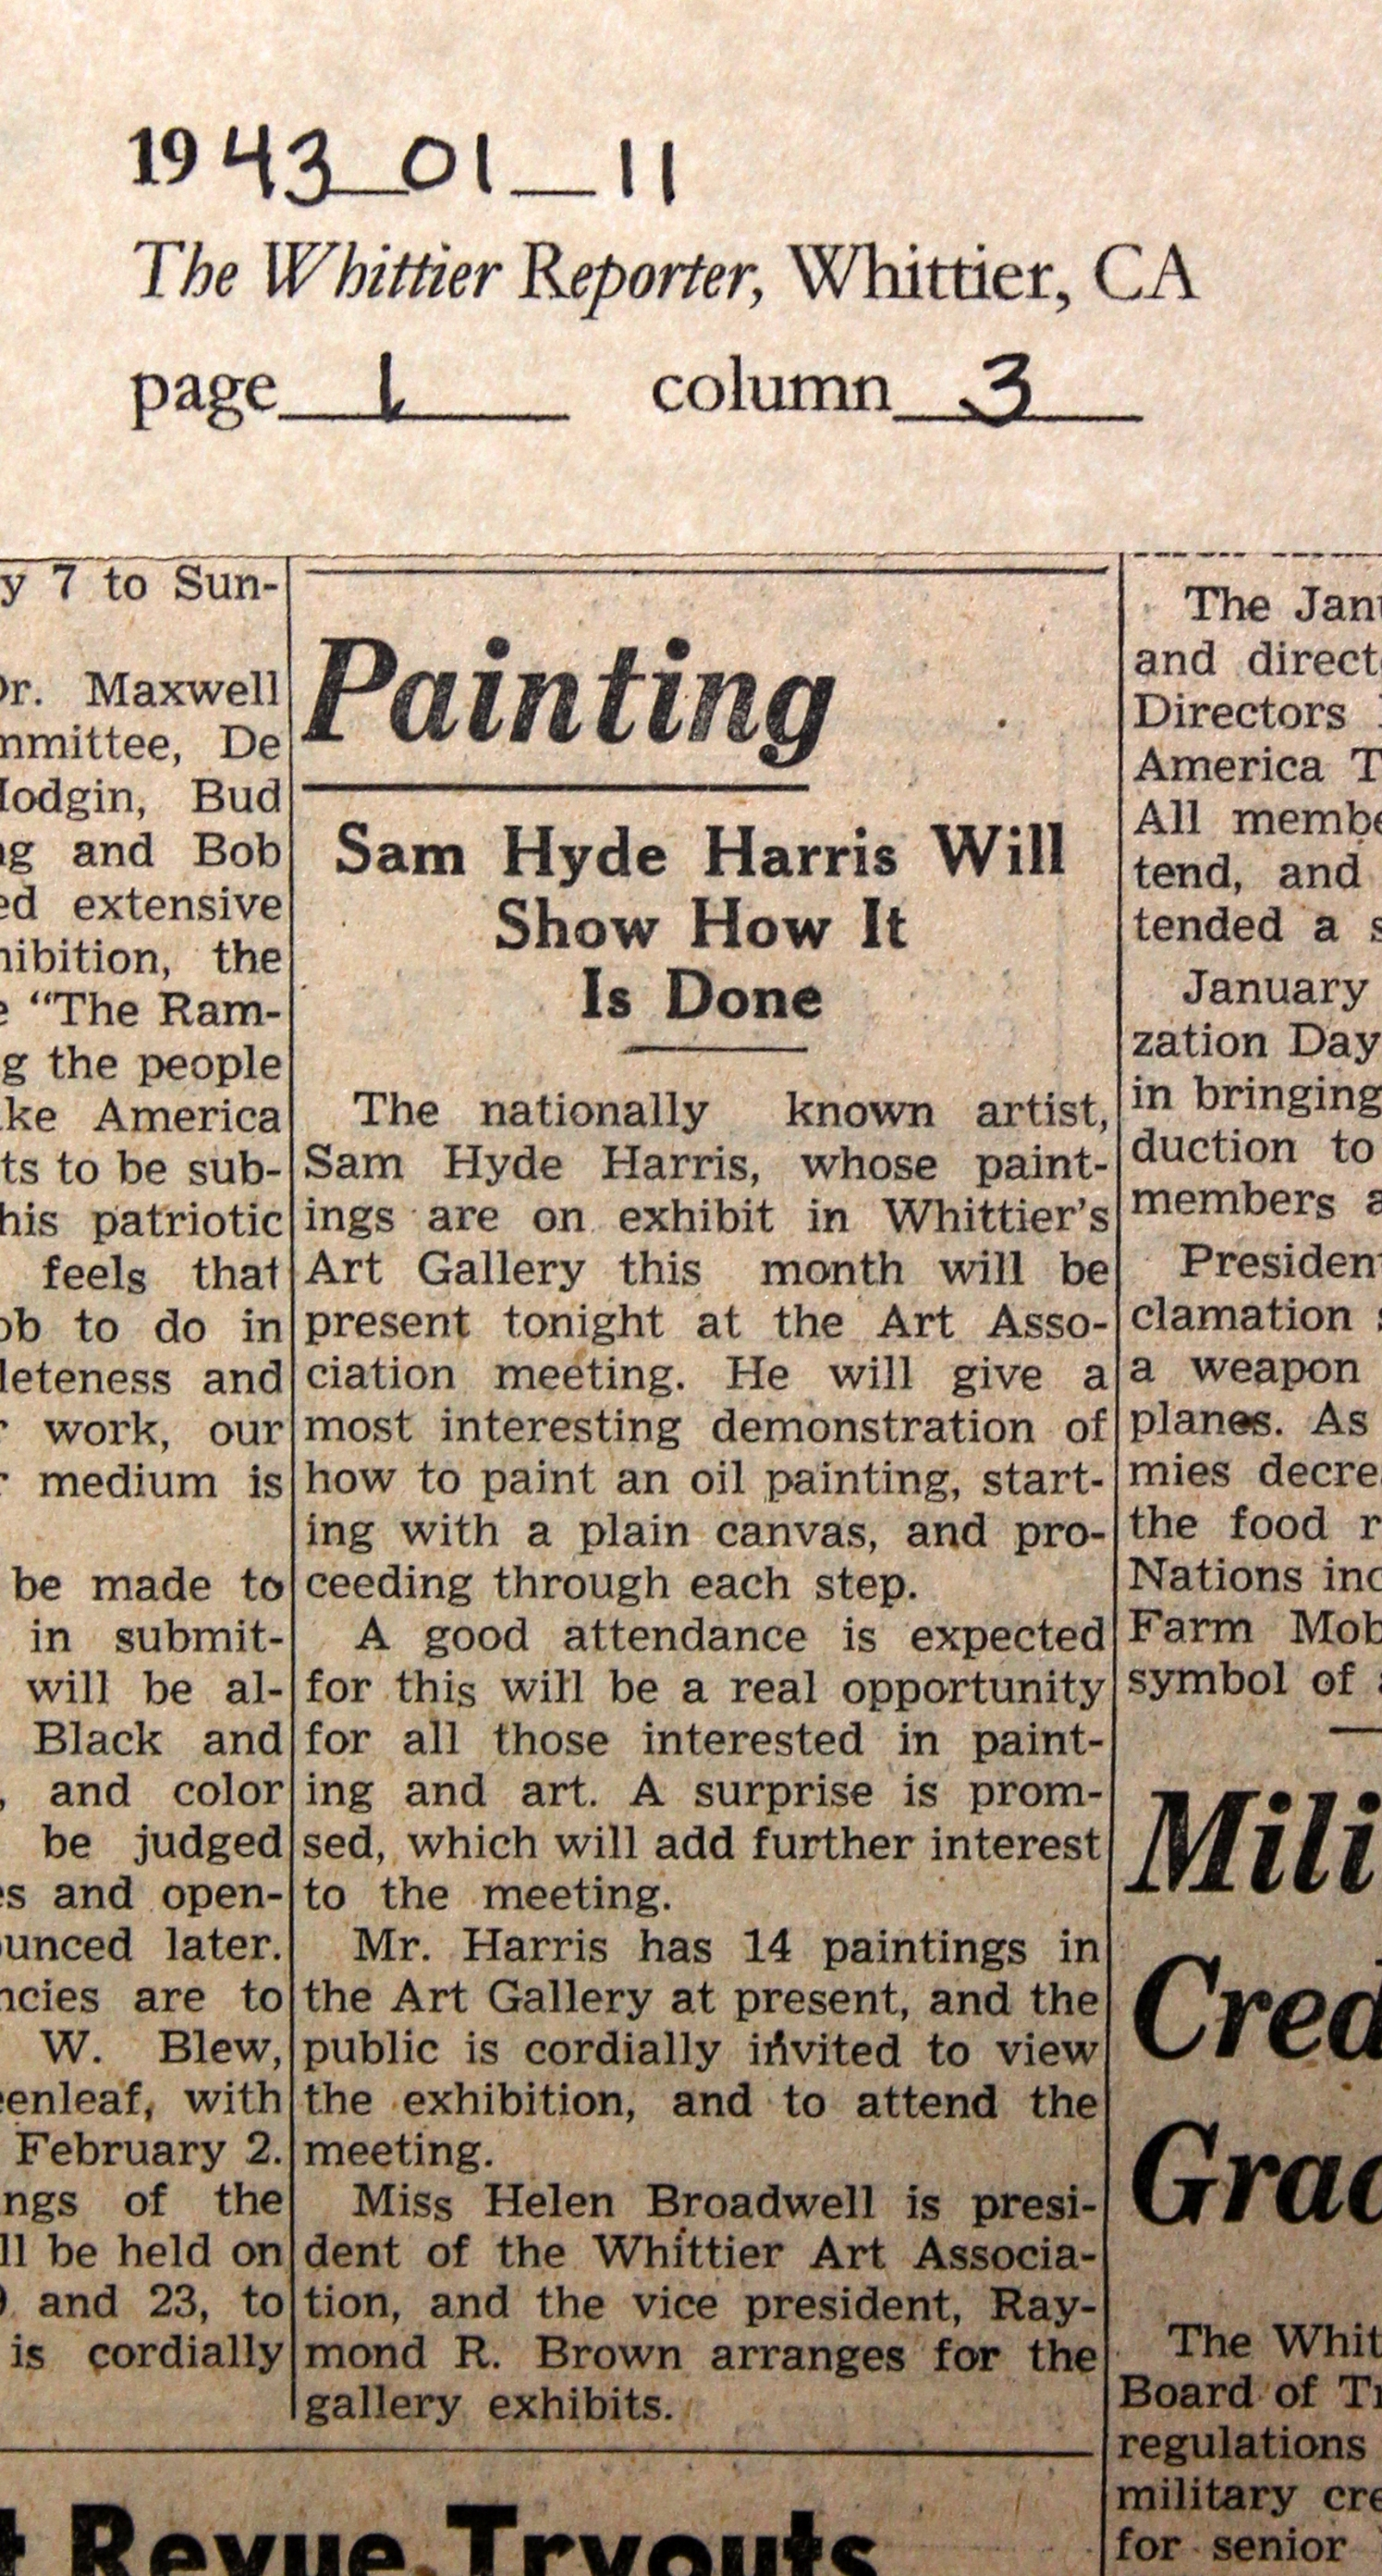 1943_01_11 WR Sam Hyde Harris exhibit & demo edit